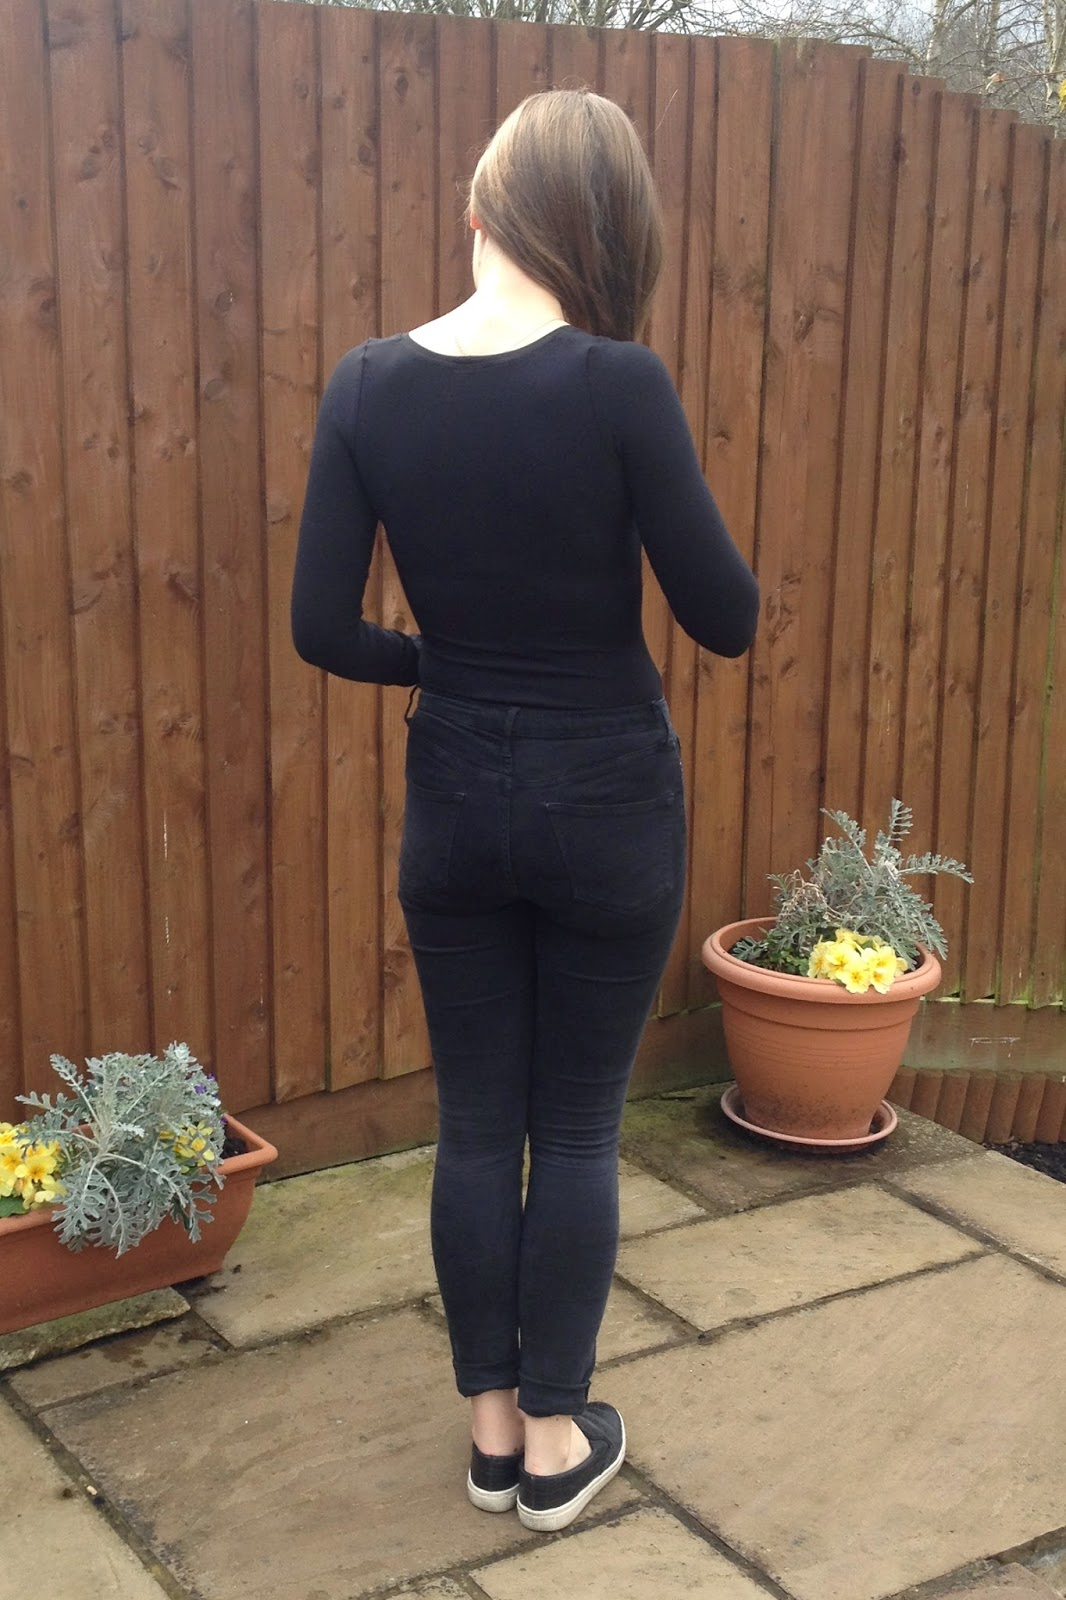 Diary of a Chain Stitcher: Bamboo Jersey Nettie Bodysuit